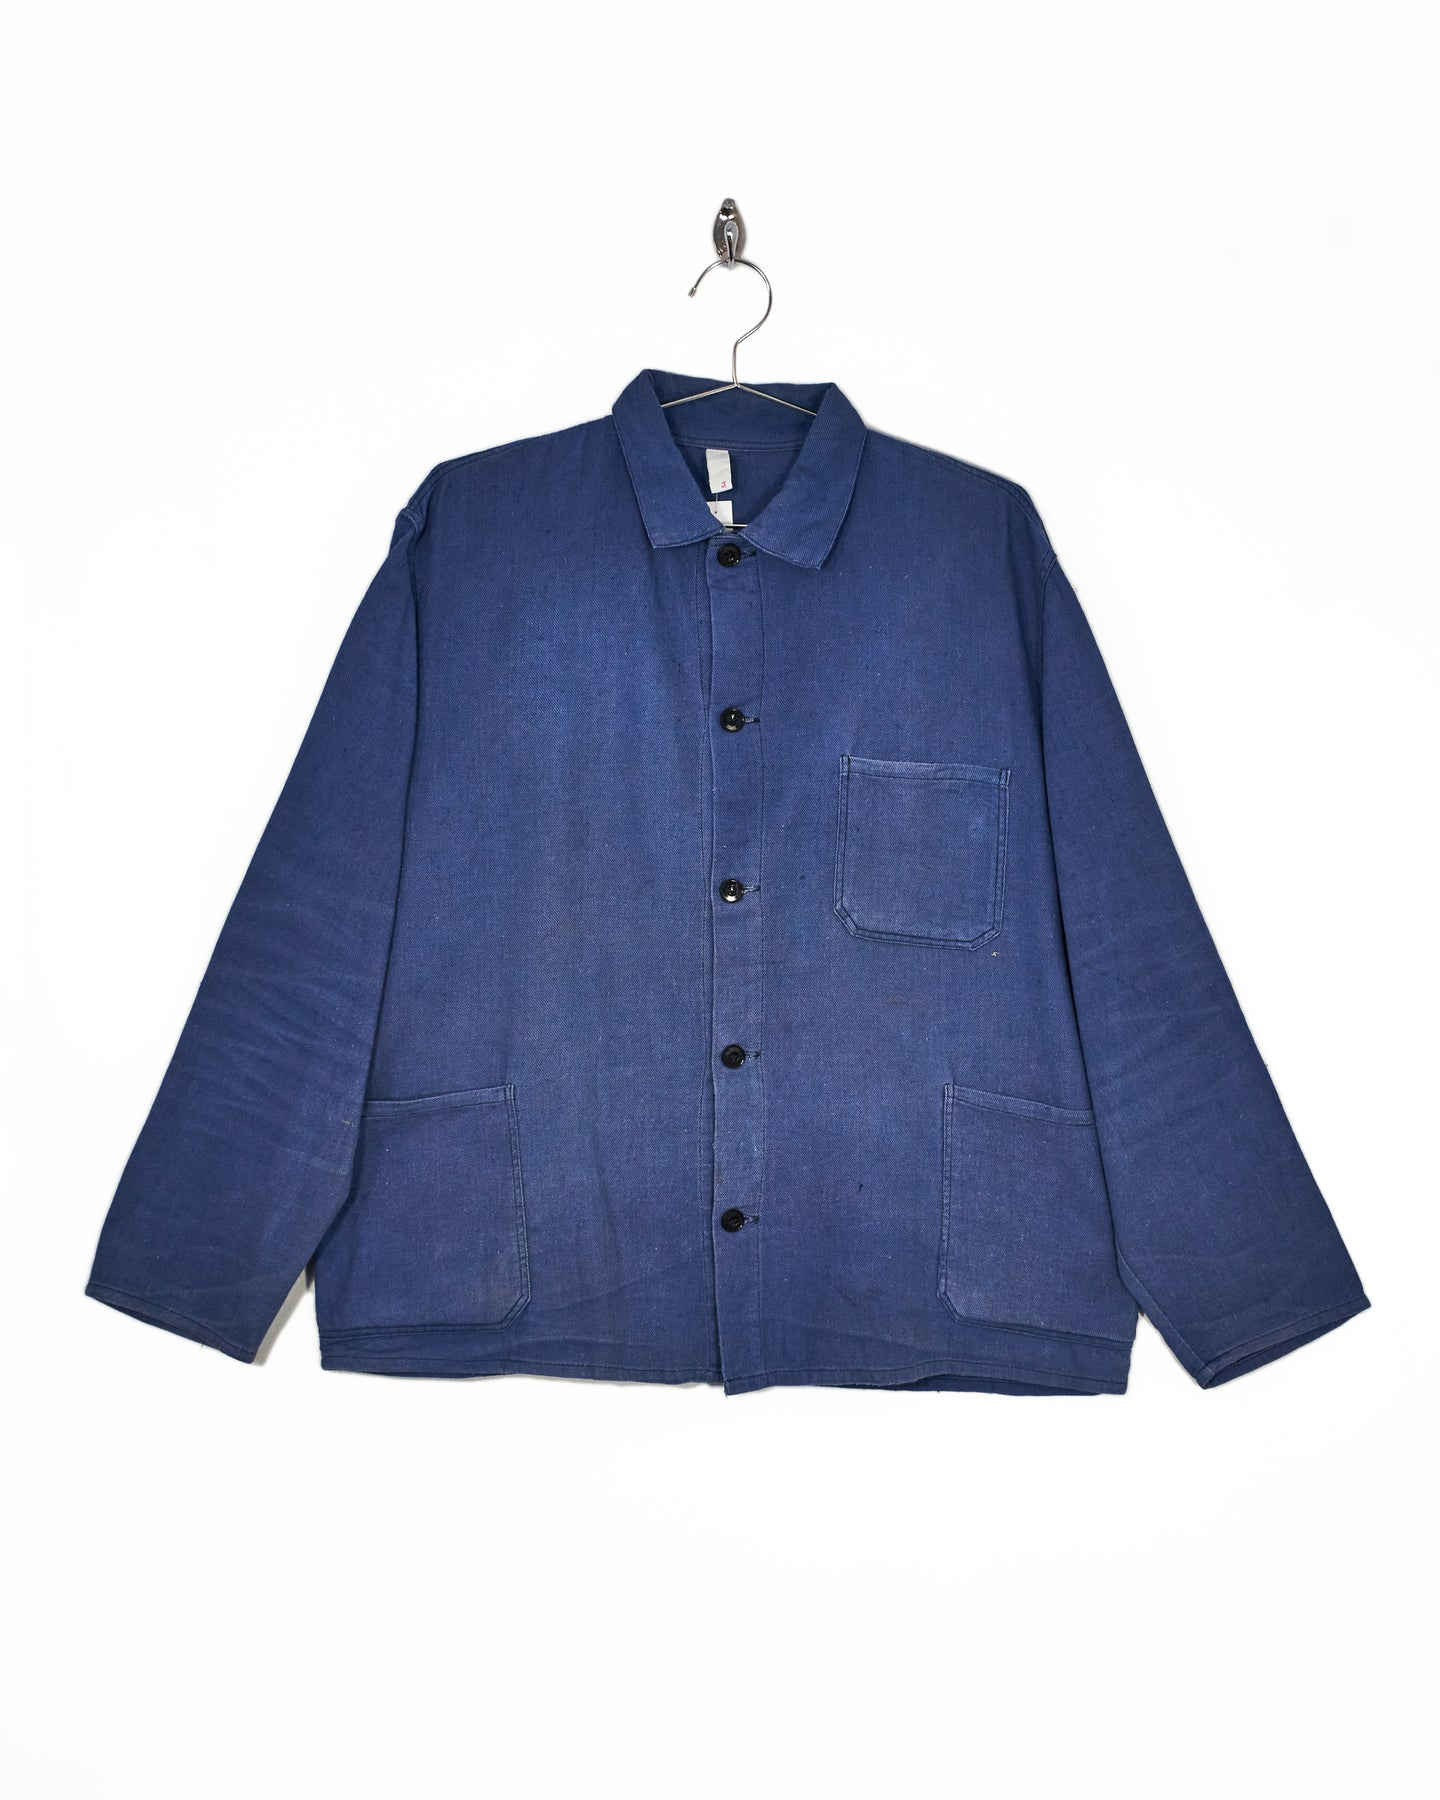 French Chore Jacket